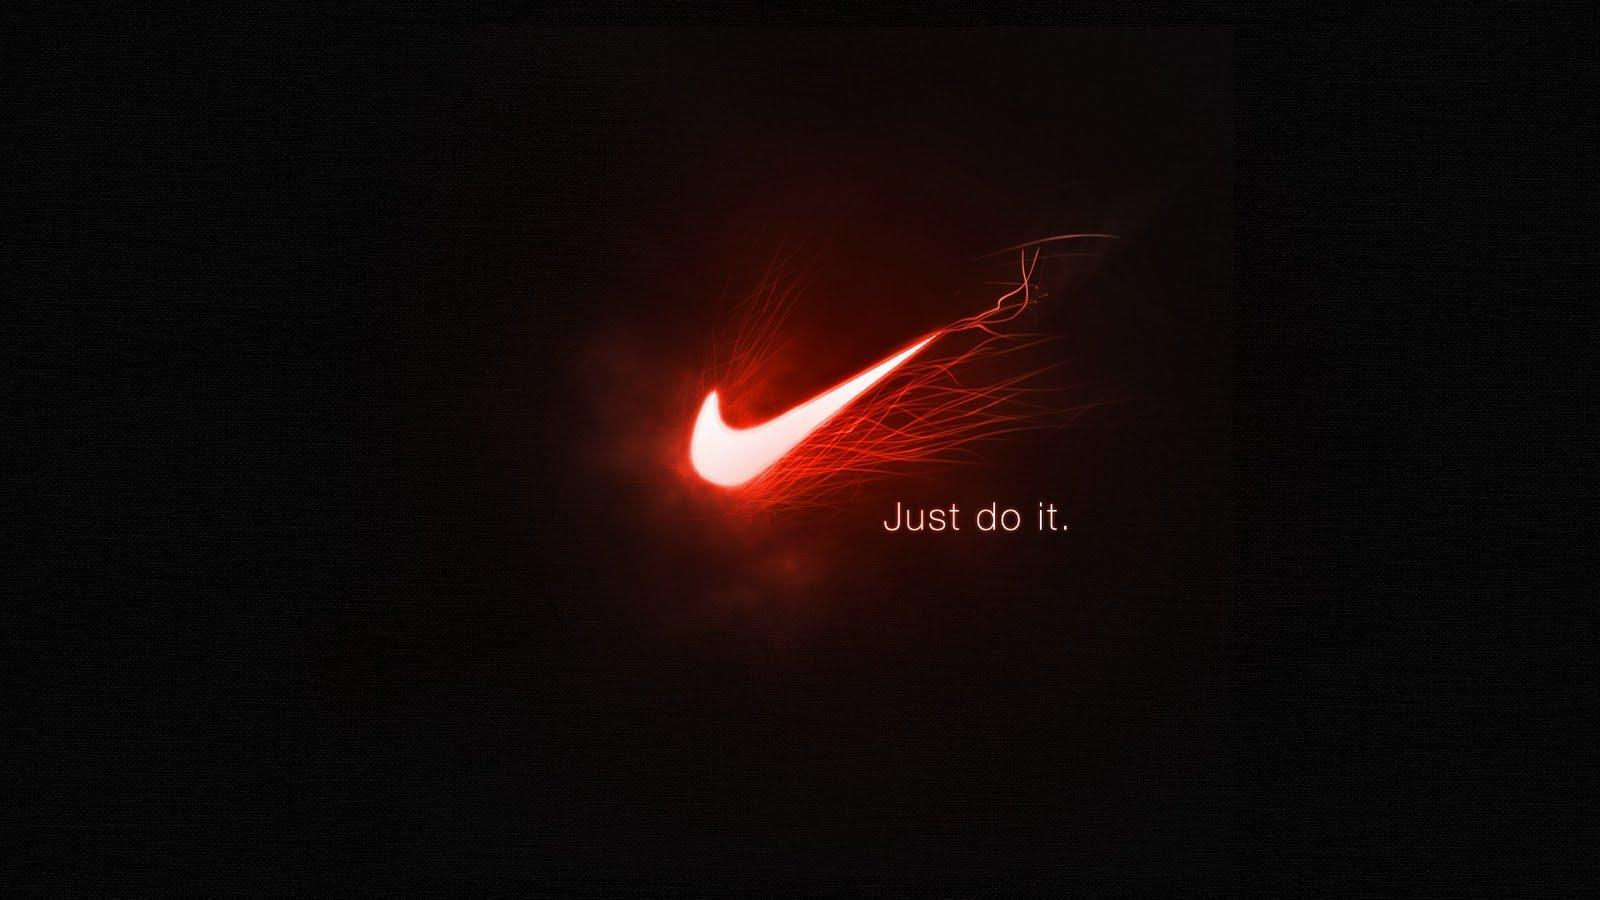 Hd wallpaper nike - Nike Football Wallpapers 2015 All Kinds Of Sports Wallpapers